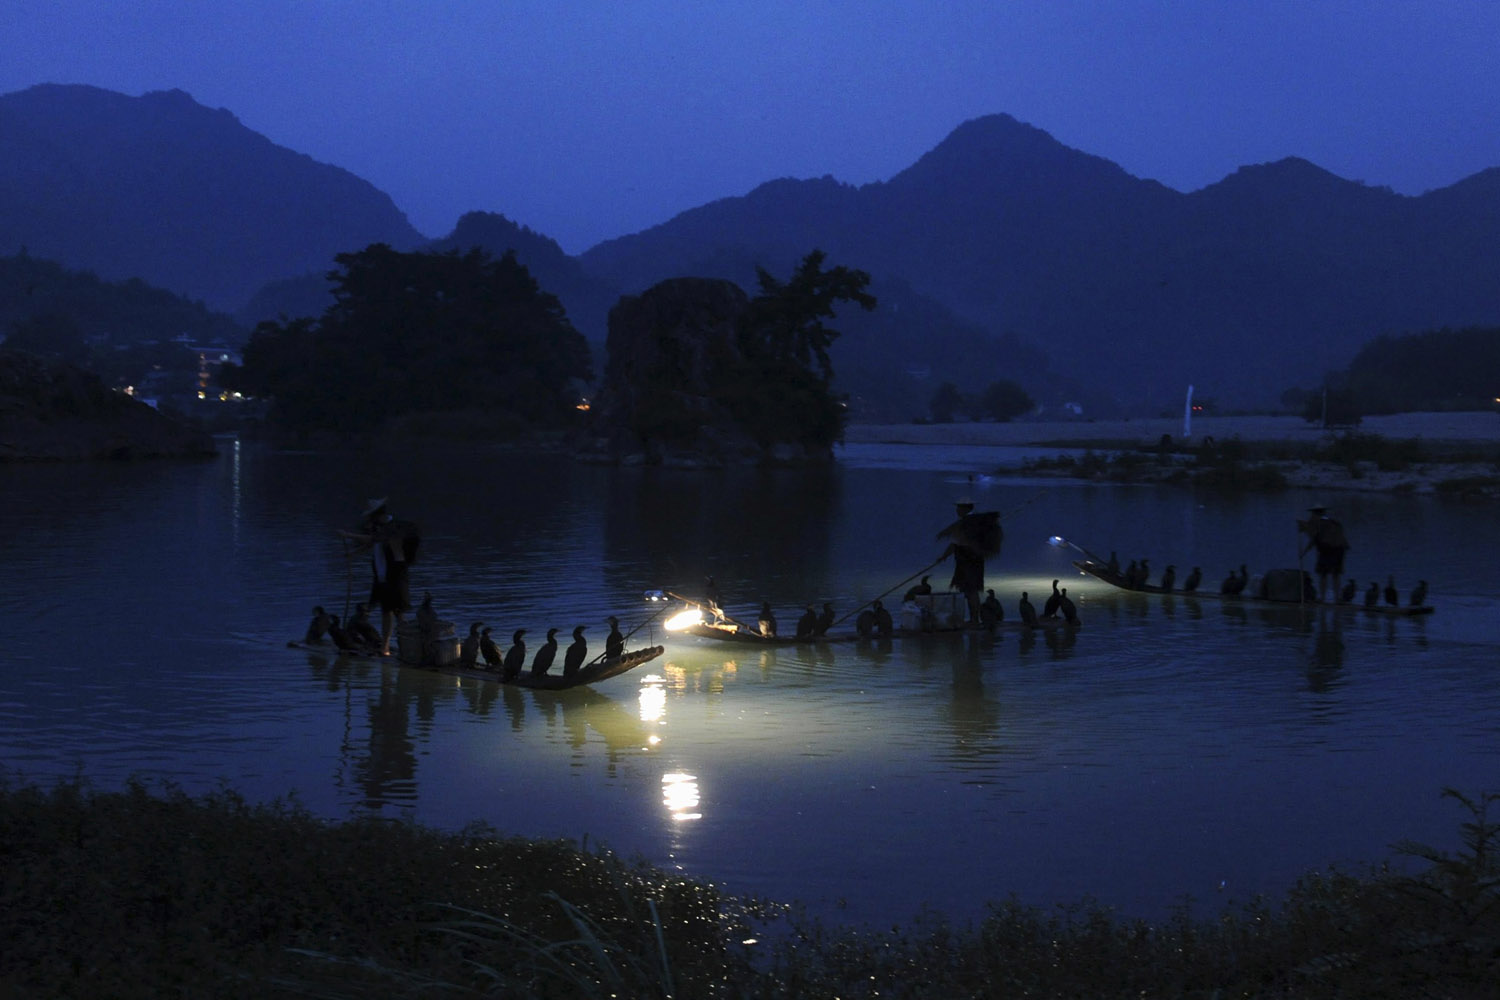 Aug. 11, 2012. Local men fish with trained cormorants perched on their boats in an ancient village in Yongjia County, Zhejiang Province, China.